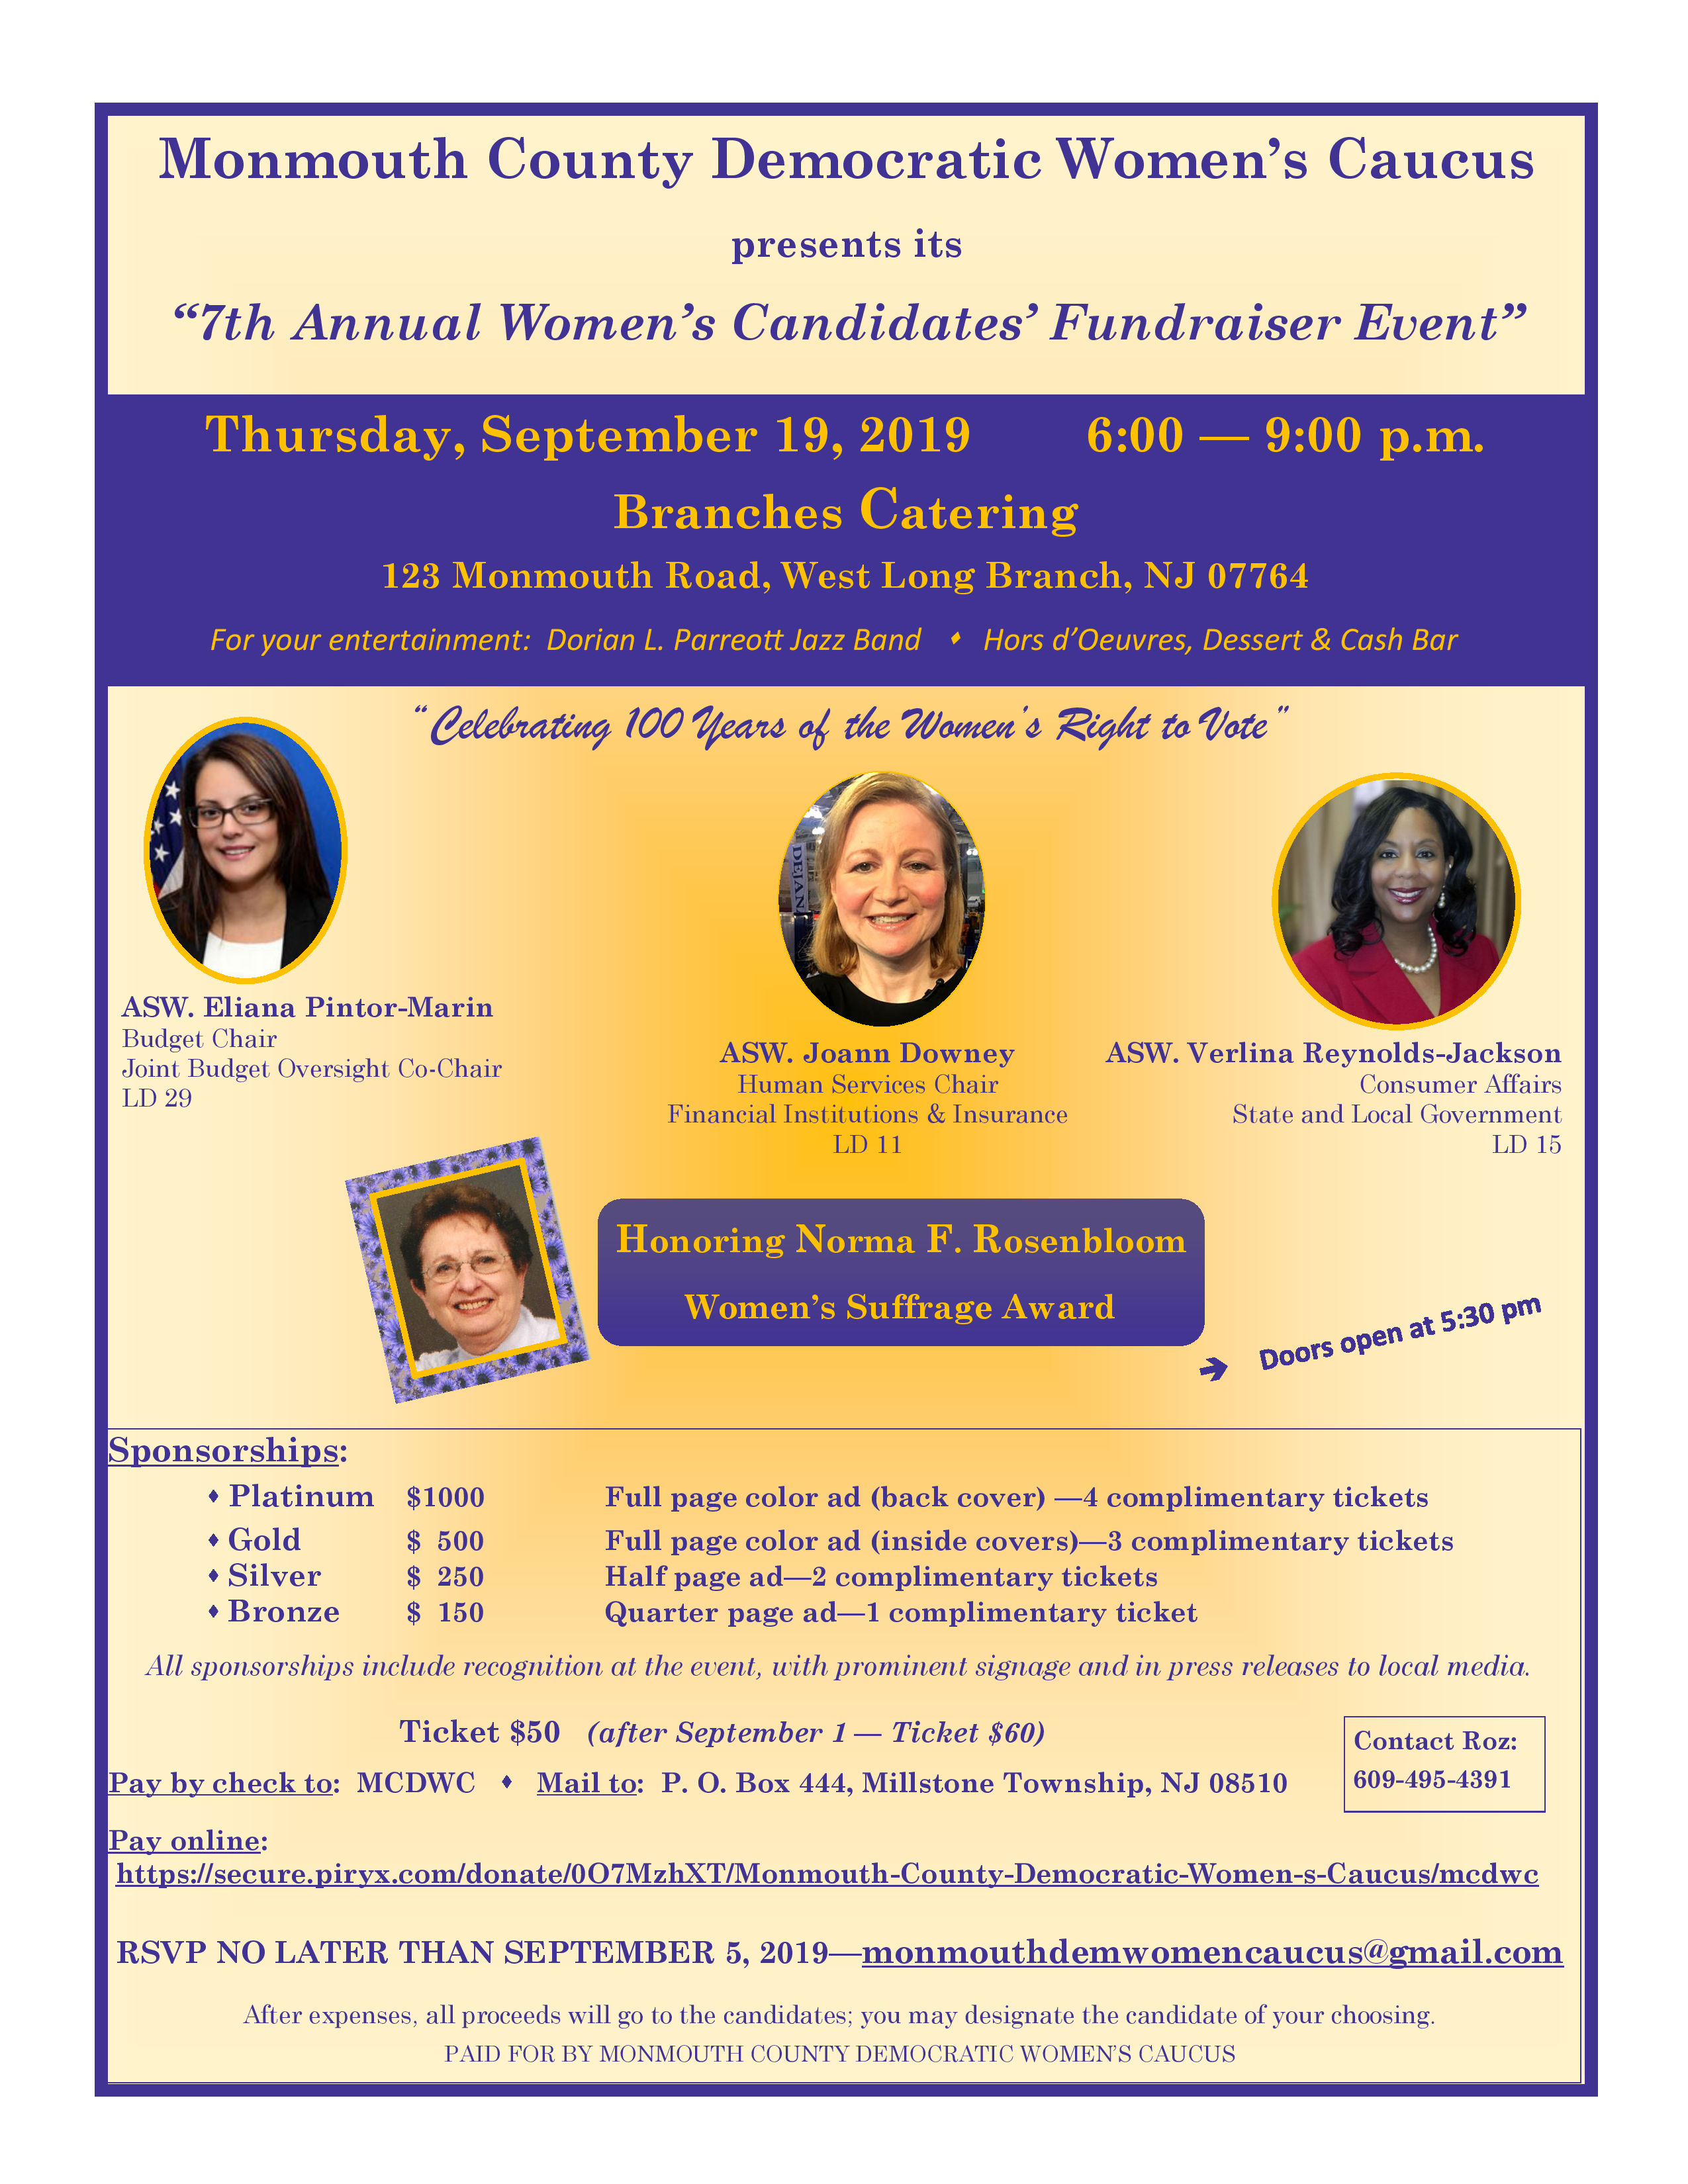 Flyer for 2019 Women Candidates Fundraiser